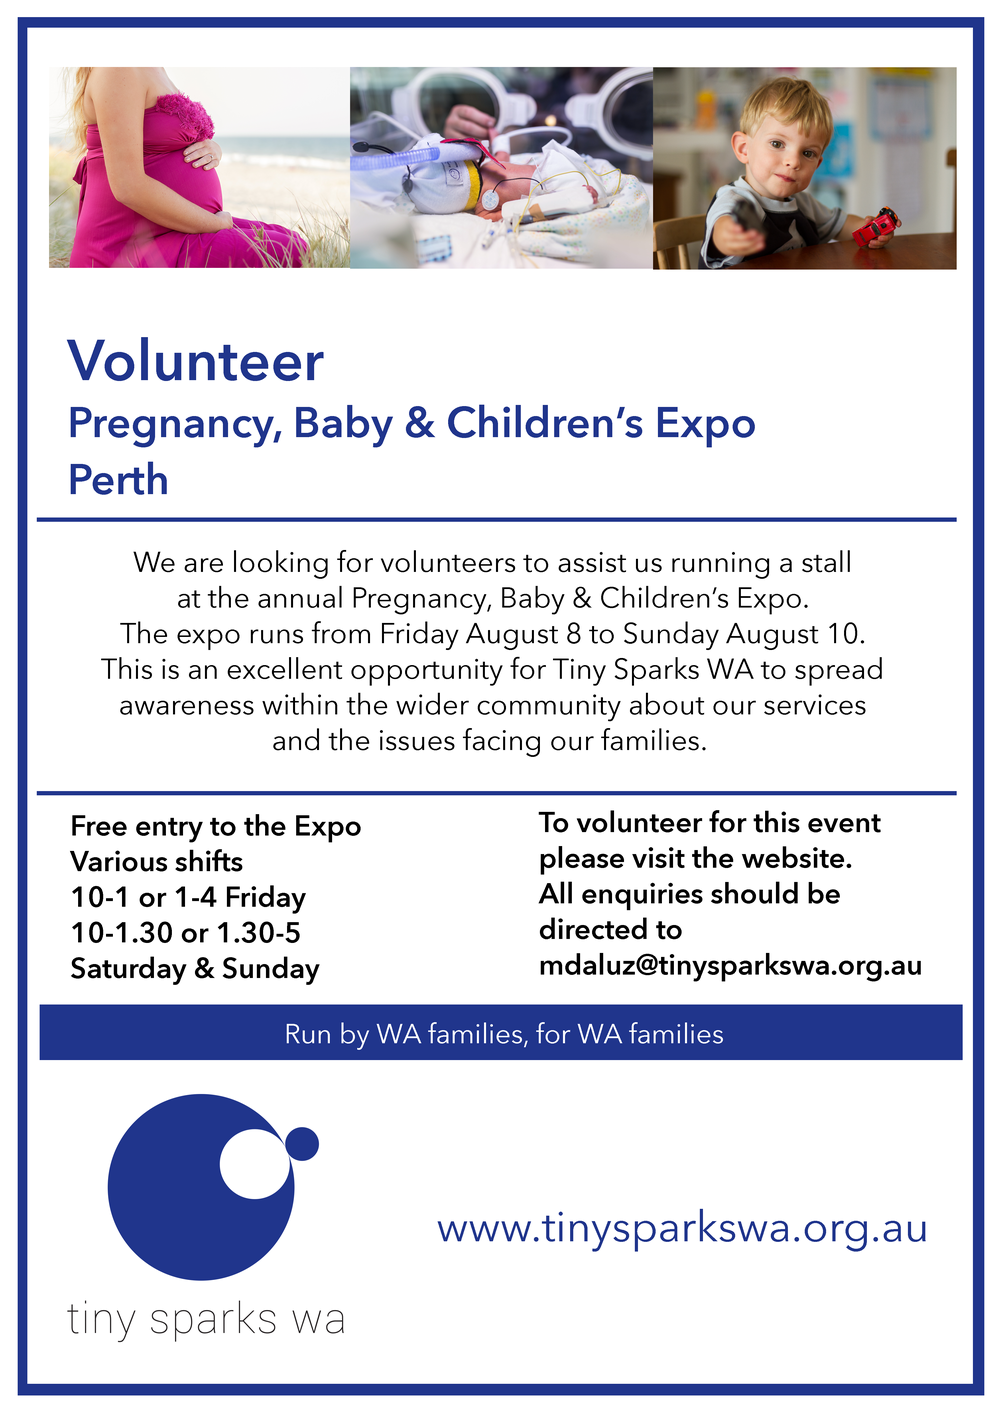 Pregnancy, Baby & Children's Expo